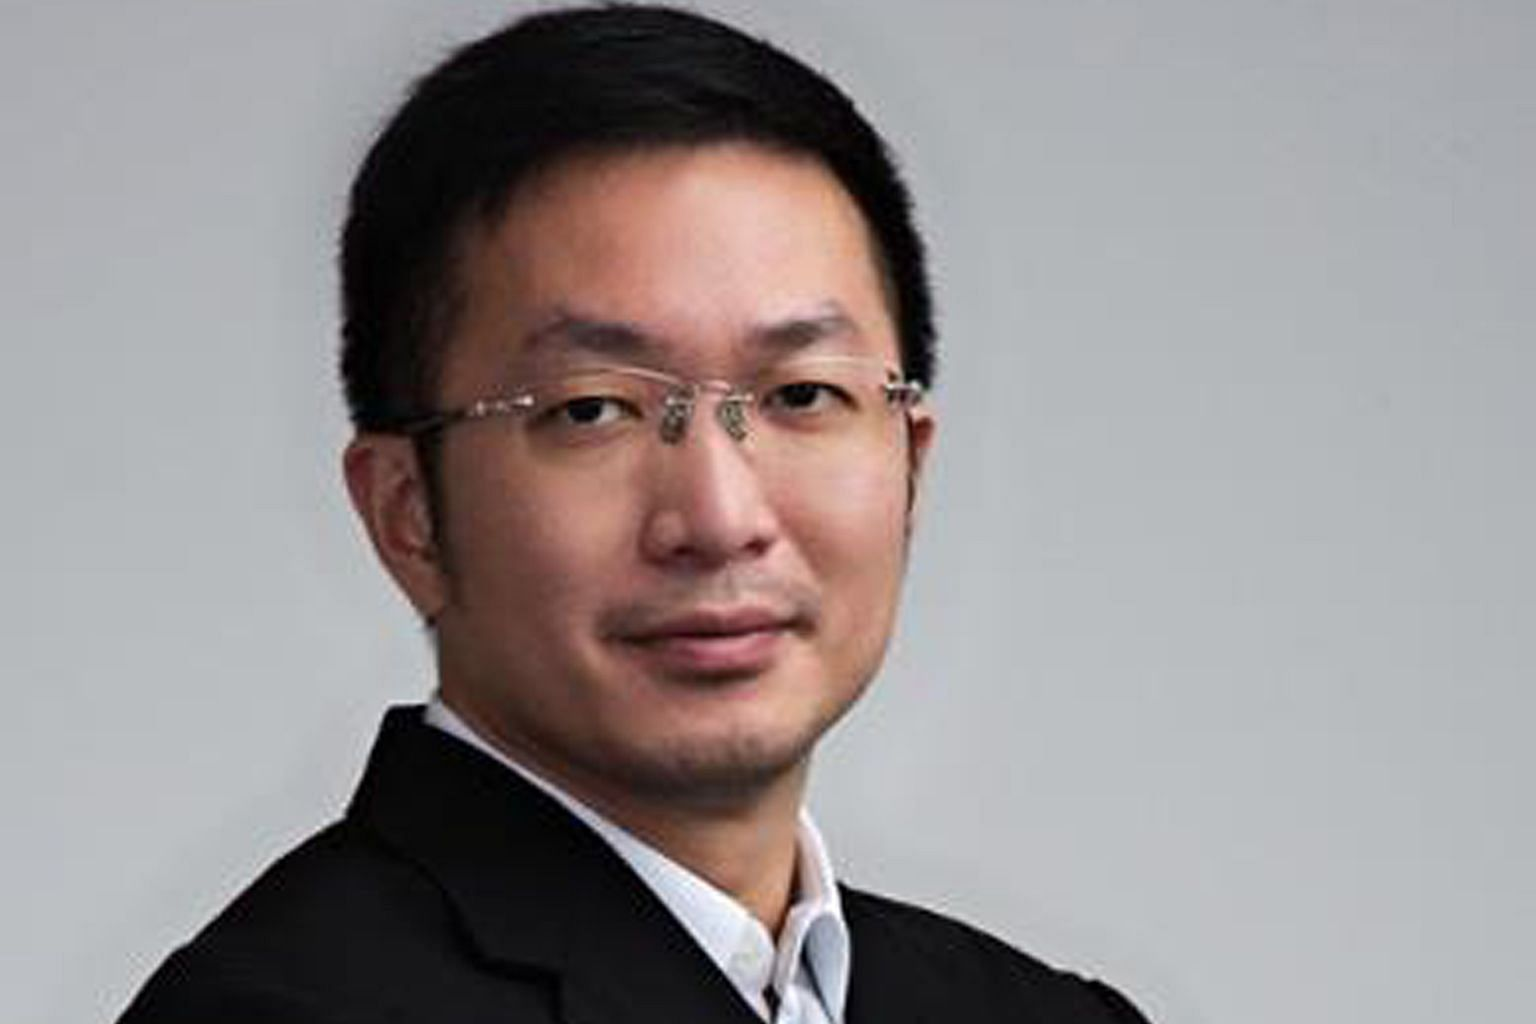 Lawyer Jeffrey Ong Su Aun, who was charged on June 1 with one count of cheating a company out of $6 million, faced eight new charges of forgery for the purpose of cheating in the same case yesterday.